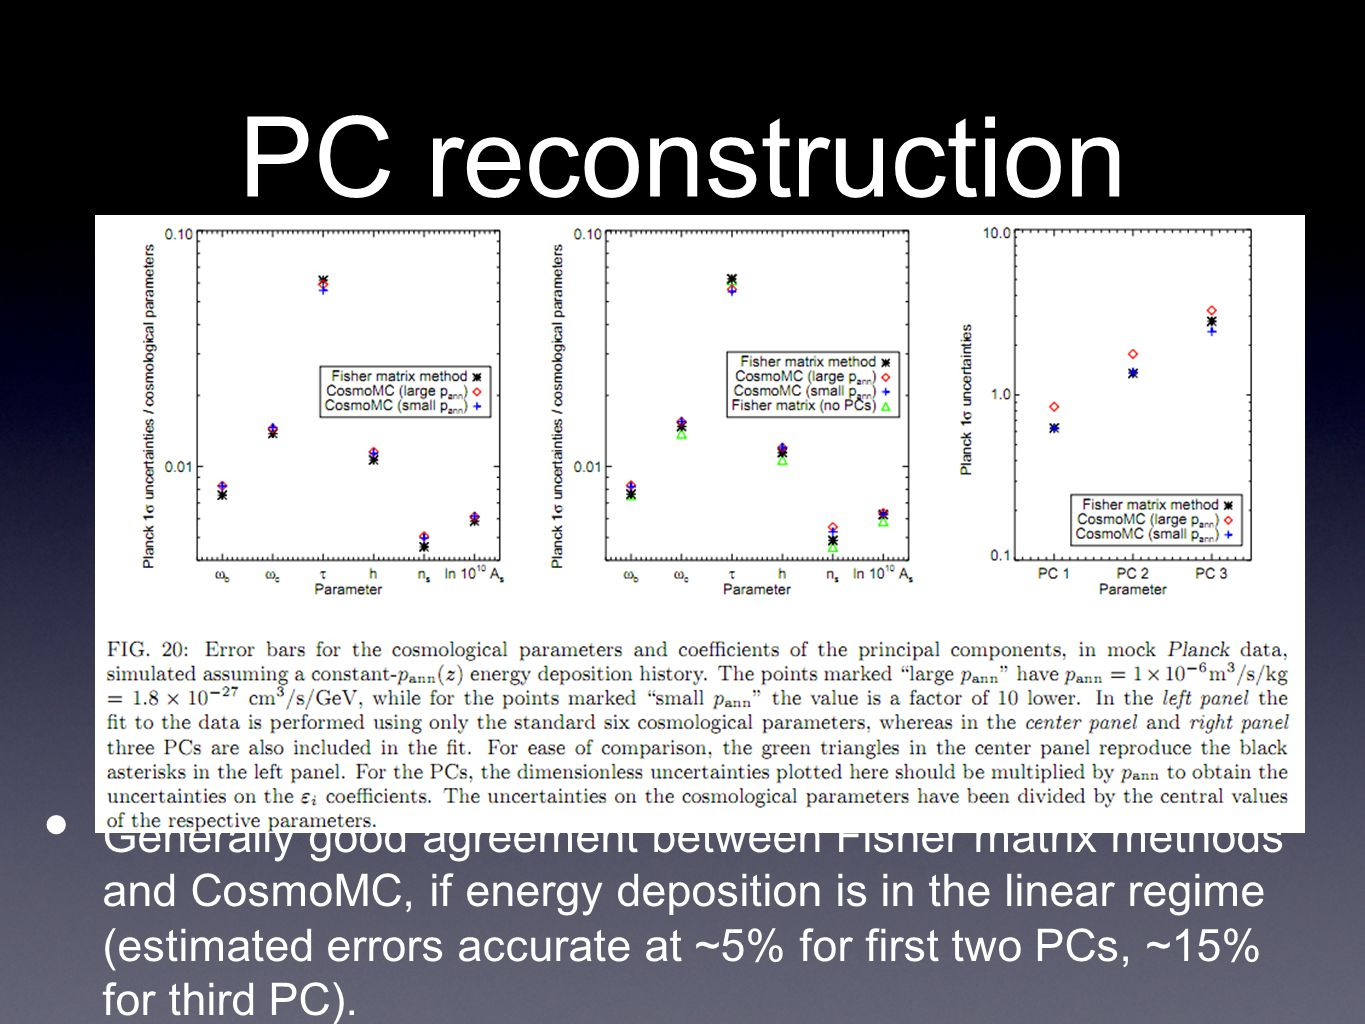 PC reconstruction • Generally good agreement between Fisher matrix methods and CosmoMC, if energy deposition is in the linear regime (estimated errors accurate at ~5% for first two PCs, ~15% for third PC).